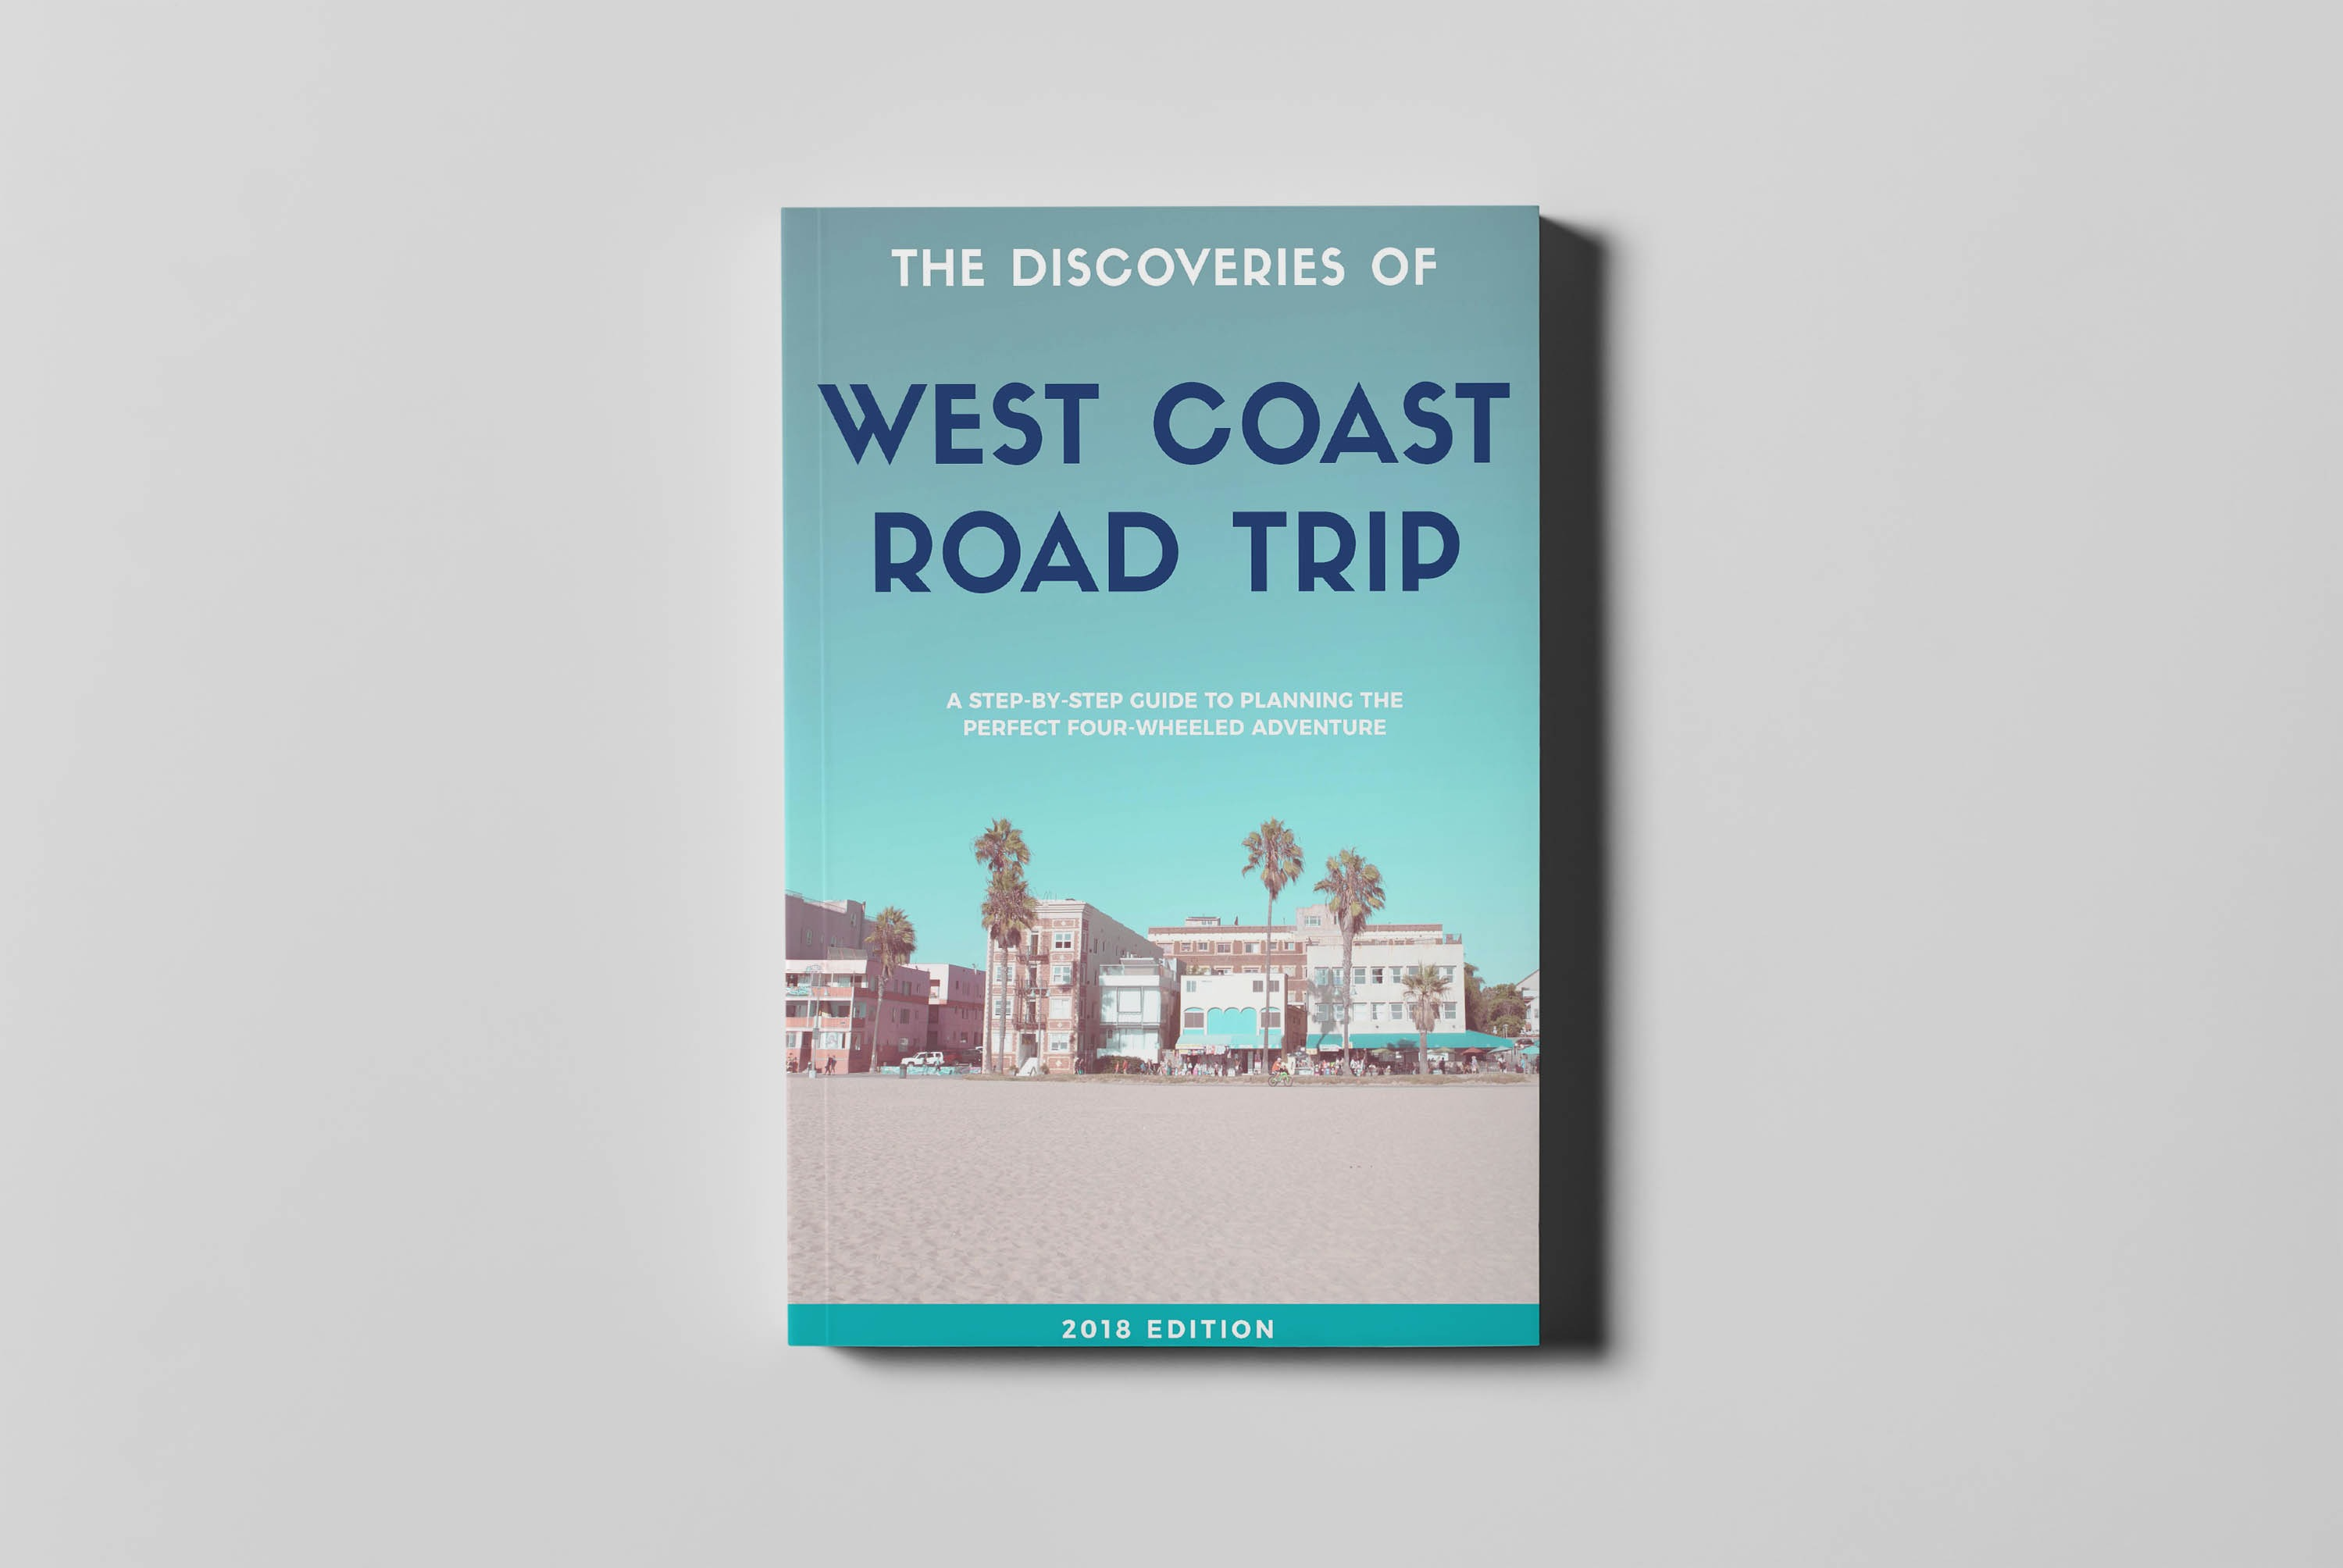 West Coast USA Road Trip Guidebook - Everything You Need to Know to Plan the Perfect Road Trip Adventure in the USA - Written by Julianna Barnaby